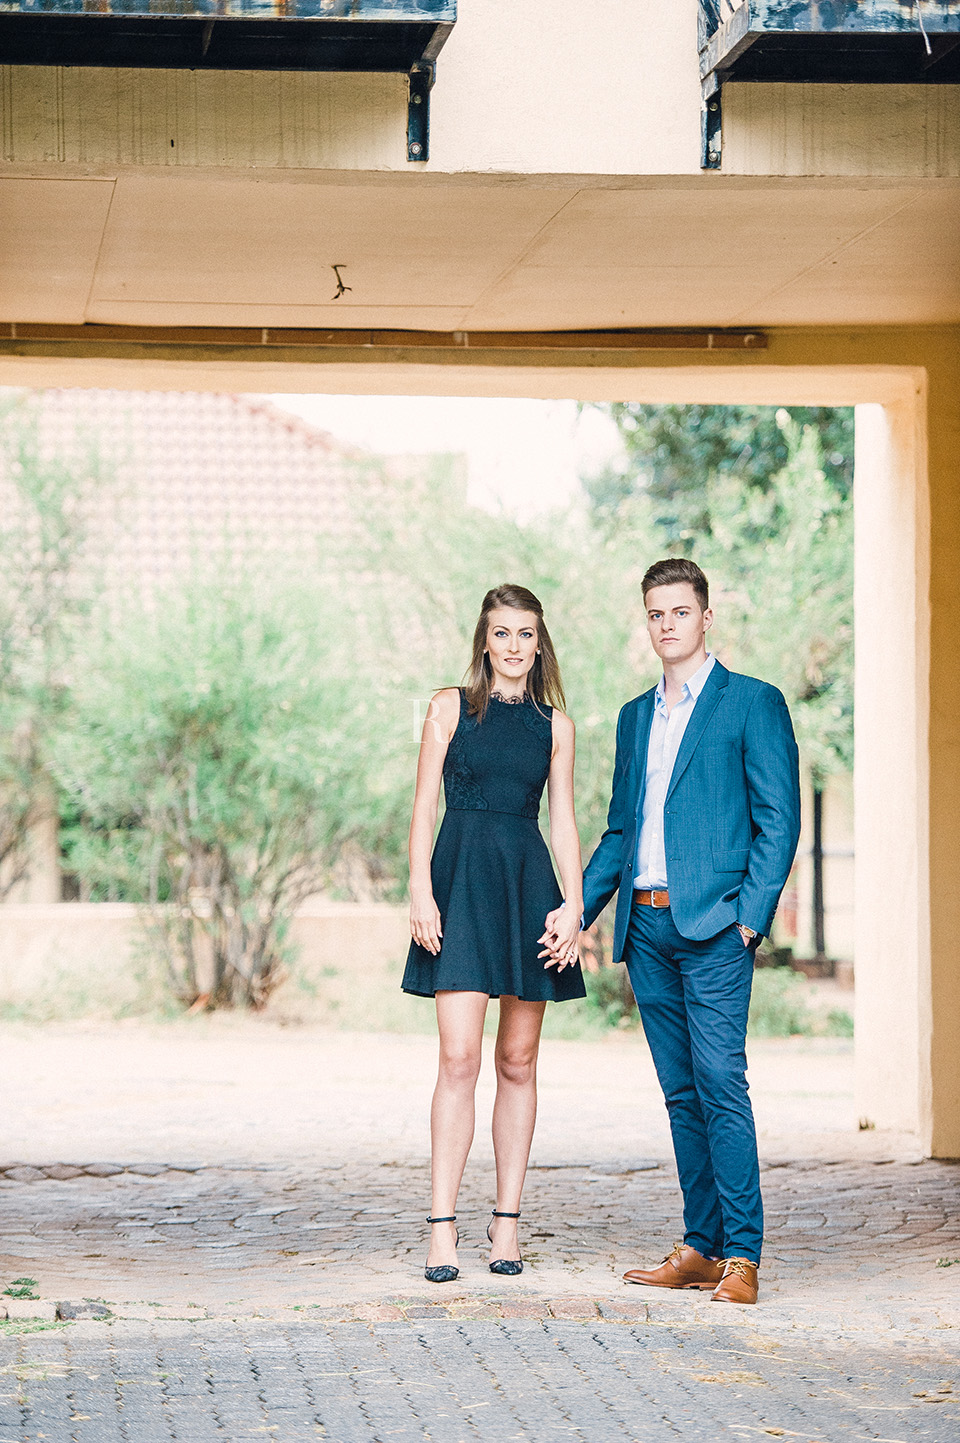 RYAN PARKER_WEDDING PHOTOGRAPHER_COUPLE SESSION_SOUTH AFRICA_JOHANNESBURG_D&M-0576.jpg